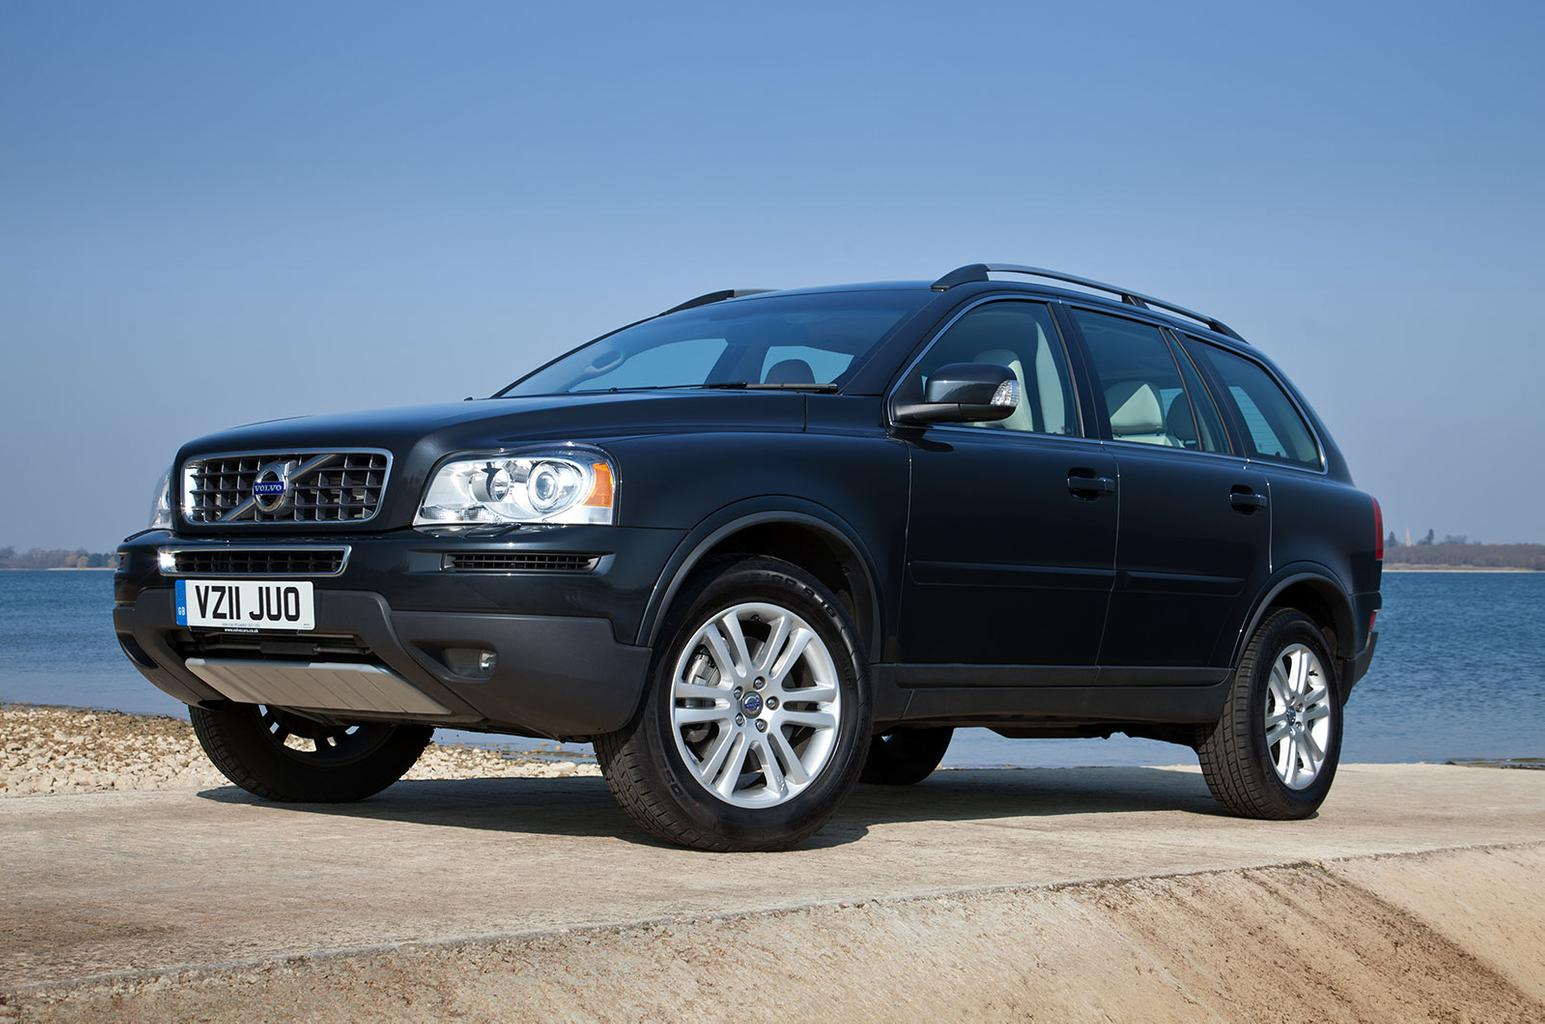 Used car of the week: Volvo XC90